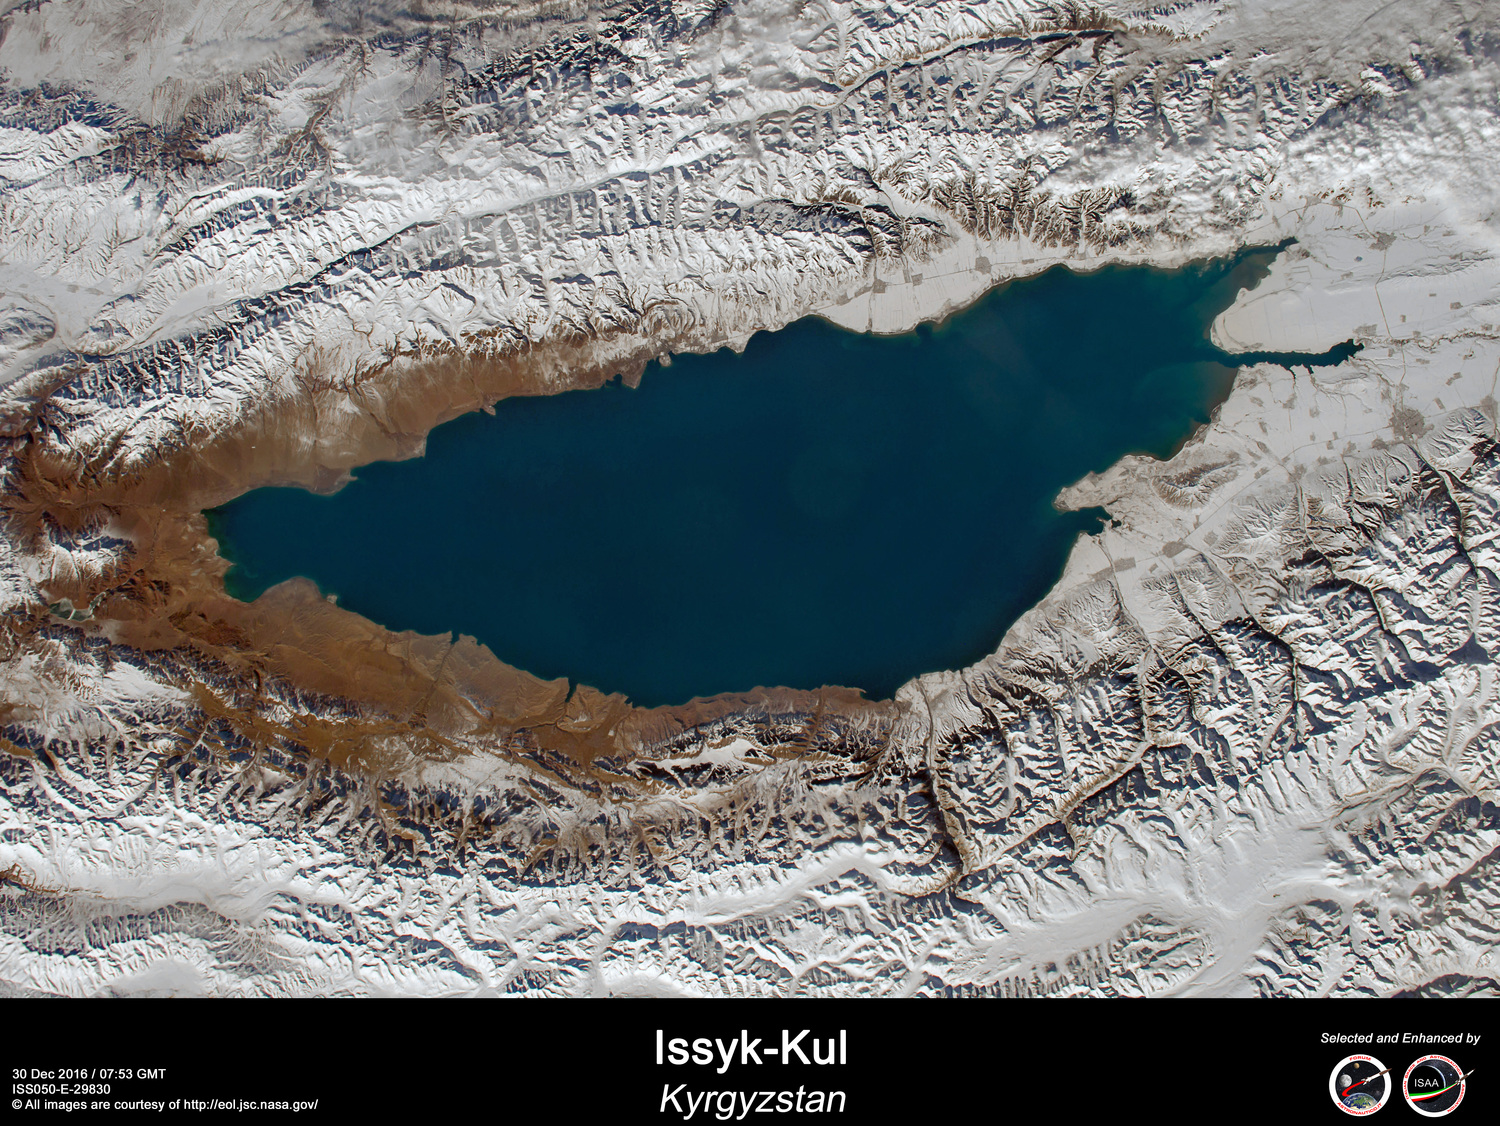 Issyk-Kul lake from space